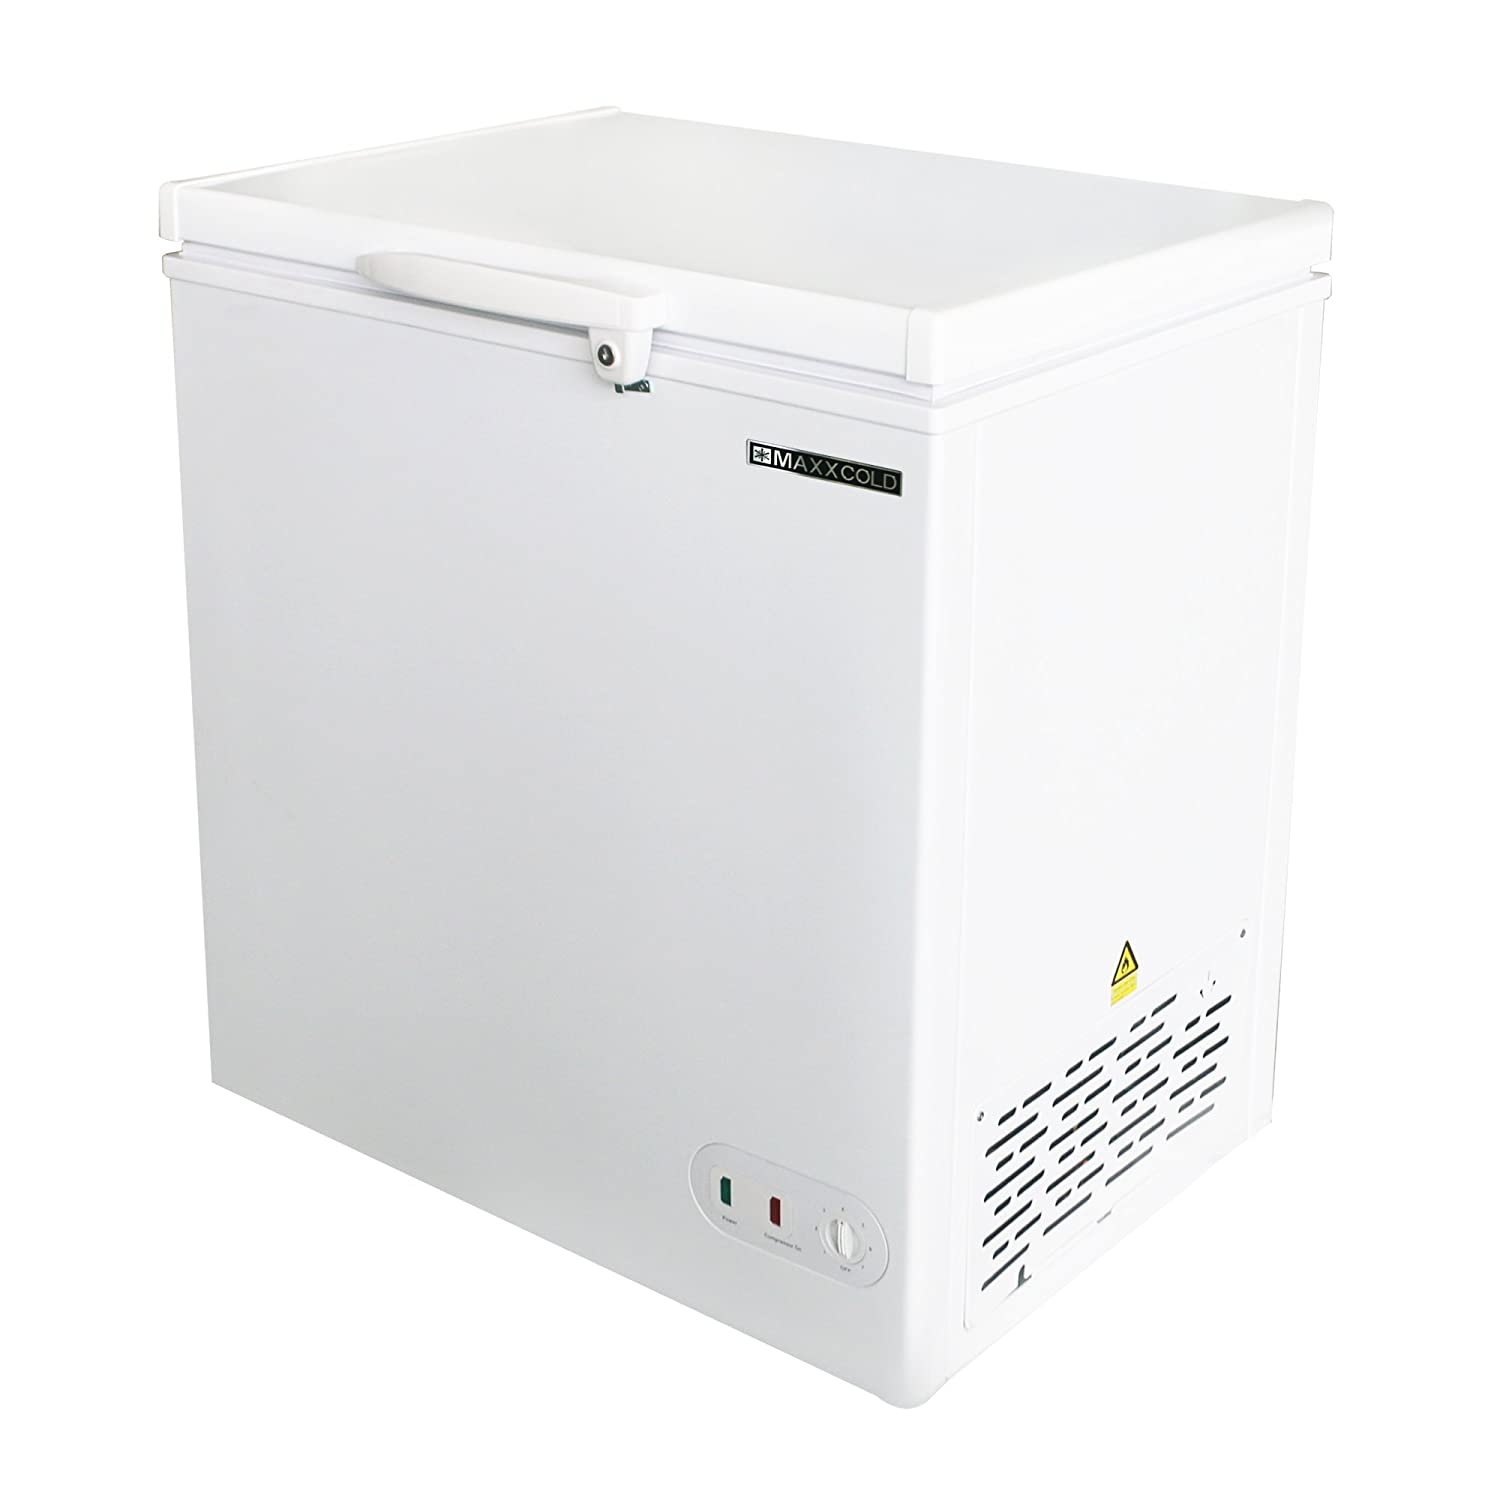 Maxx Cold 5.2 Cubic Feet 147 Liter Solid Hinged Top Sub Zero Commercial Chest Freezer with Locking Lid NSF Garage Ready Manual Defrost Keeps Frozen for 2 Days In Case of Power Outage, 30.4 In W, White